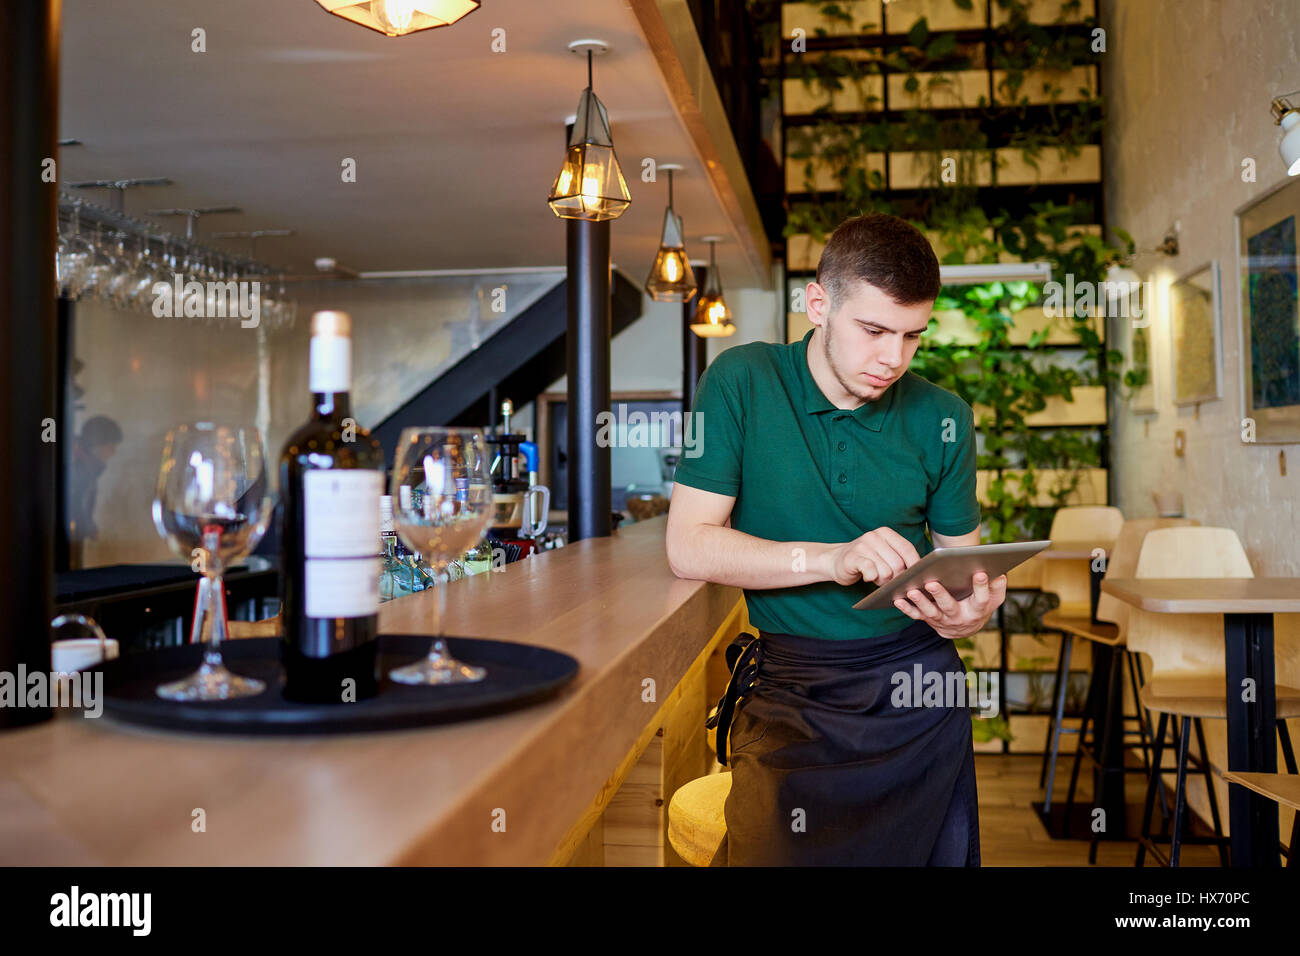 Waiters, bartenders barista rest with the tablet in a break cafe - Stock Image